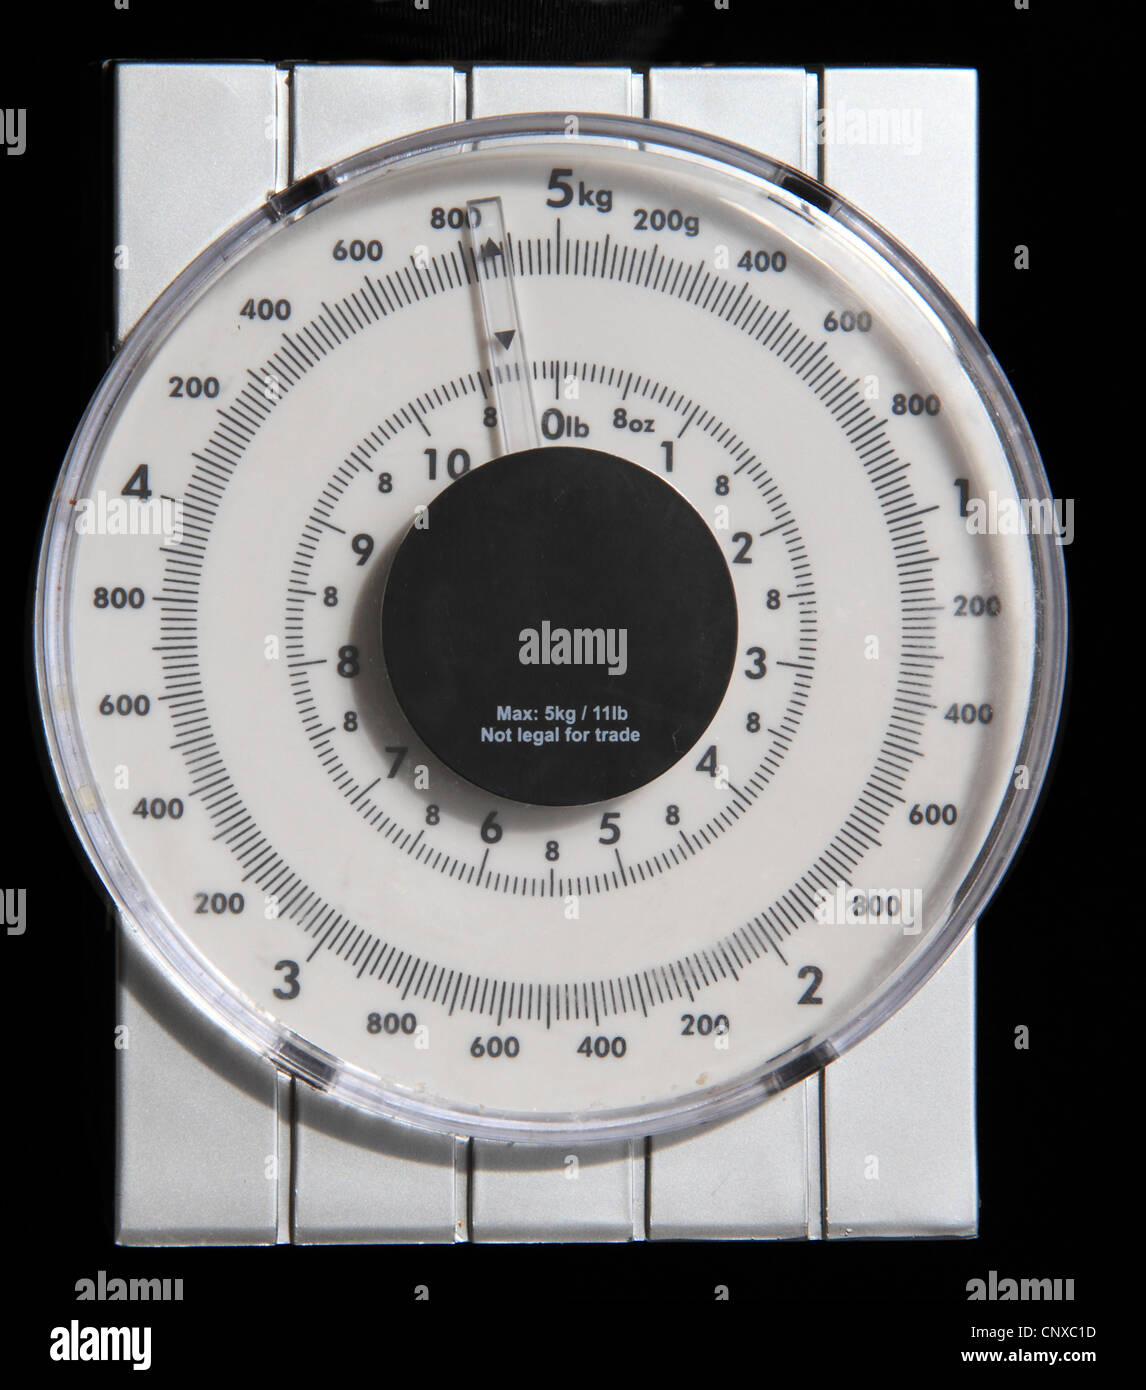 Scales with Kilograms & Pounds measures - Stock Image